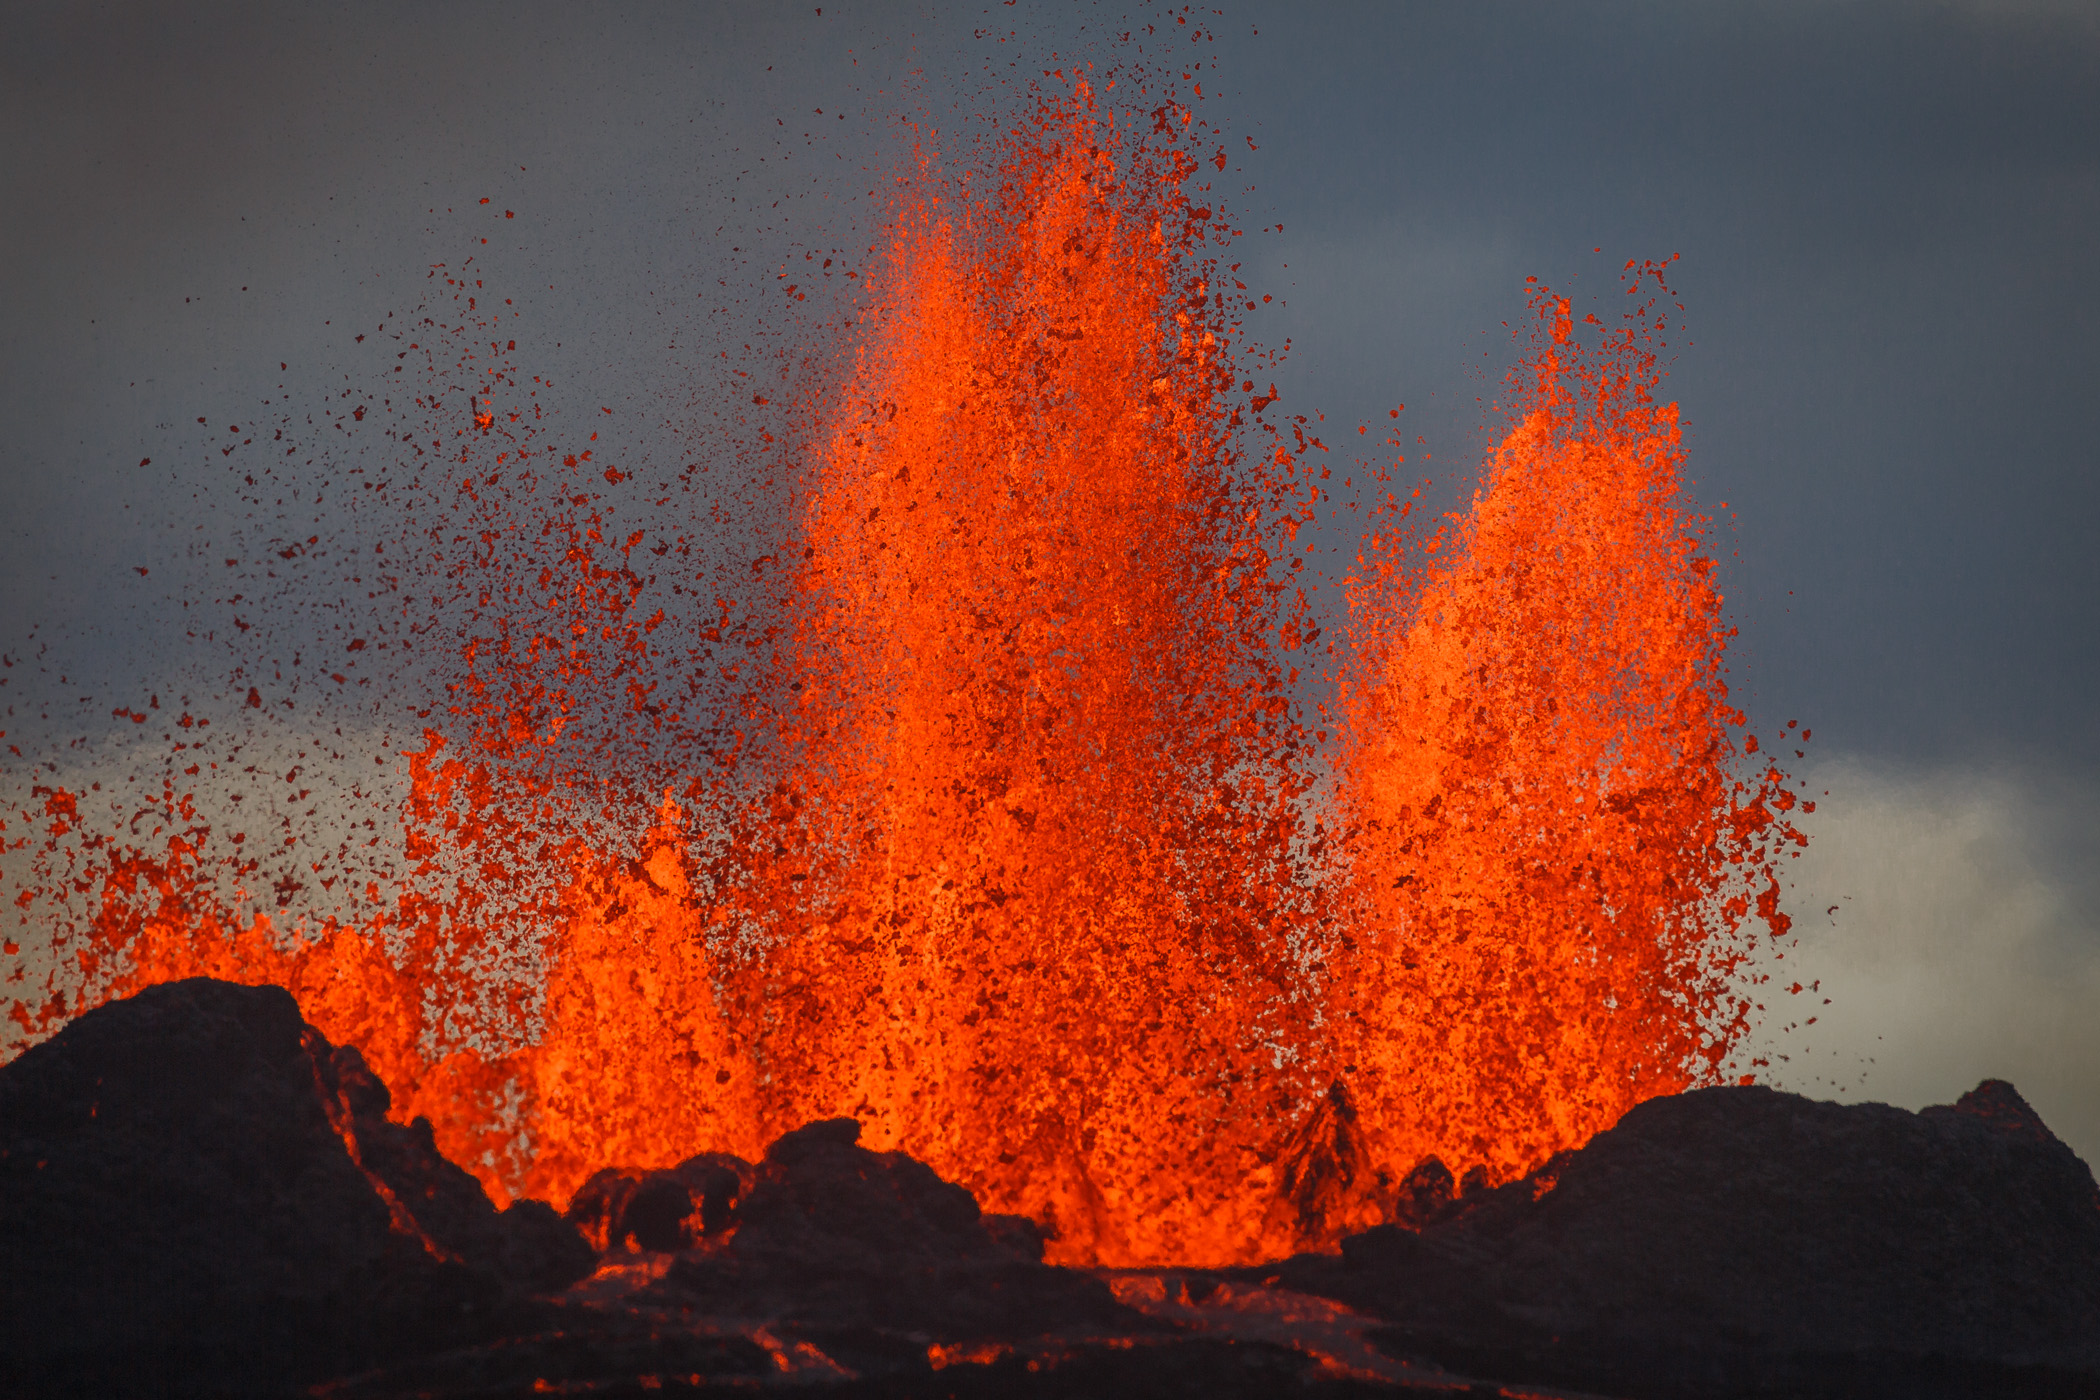 Lava bursts up to some 328 feet (100 meters) in the air near Bardarbunga. Sept. 2.